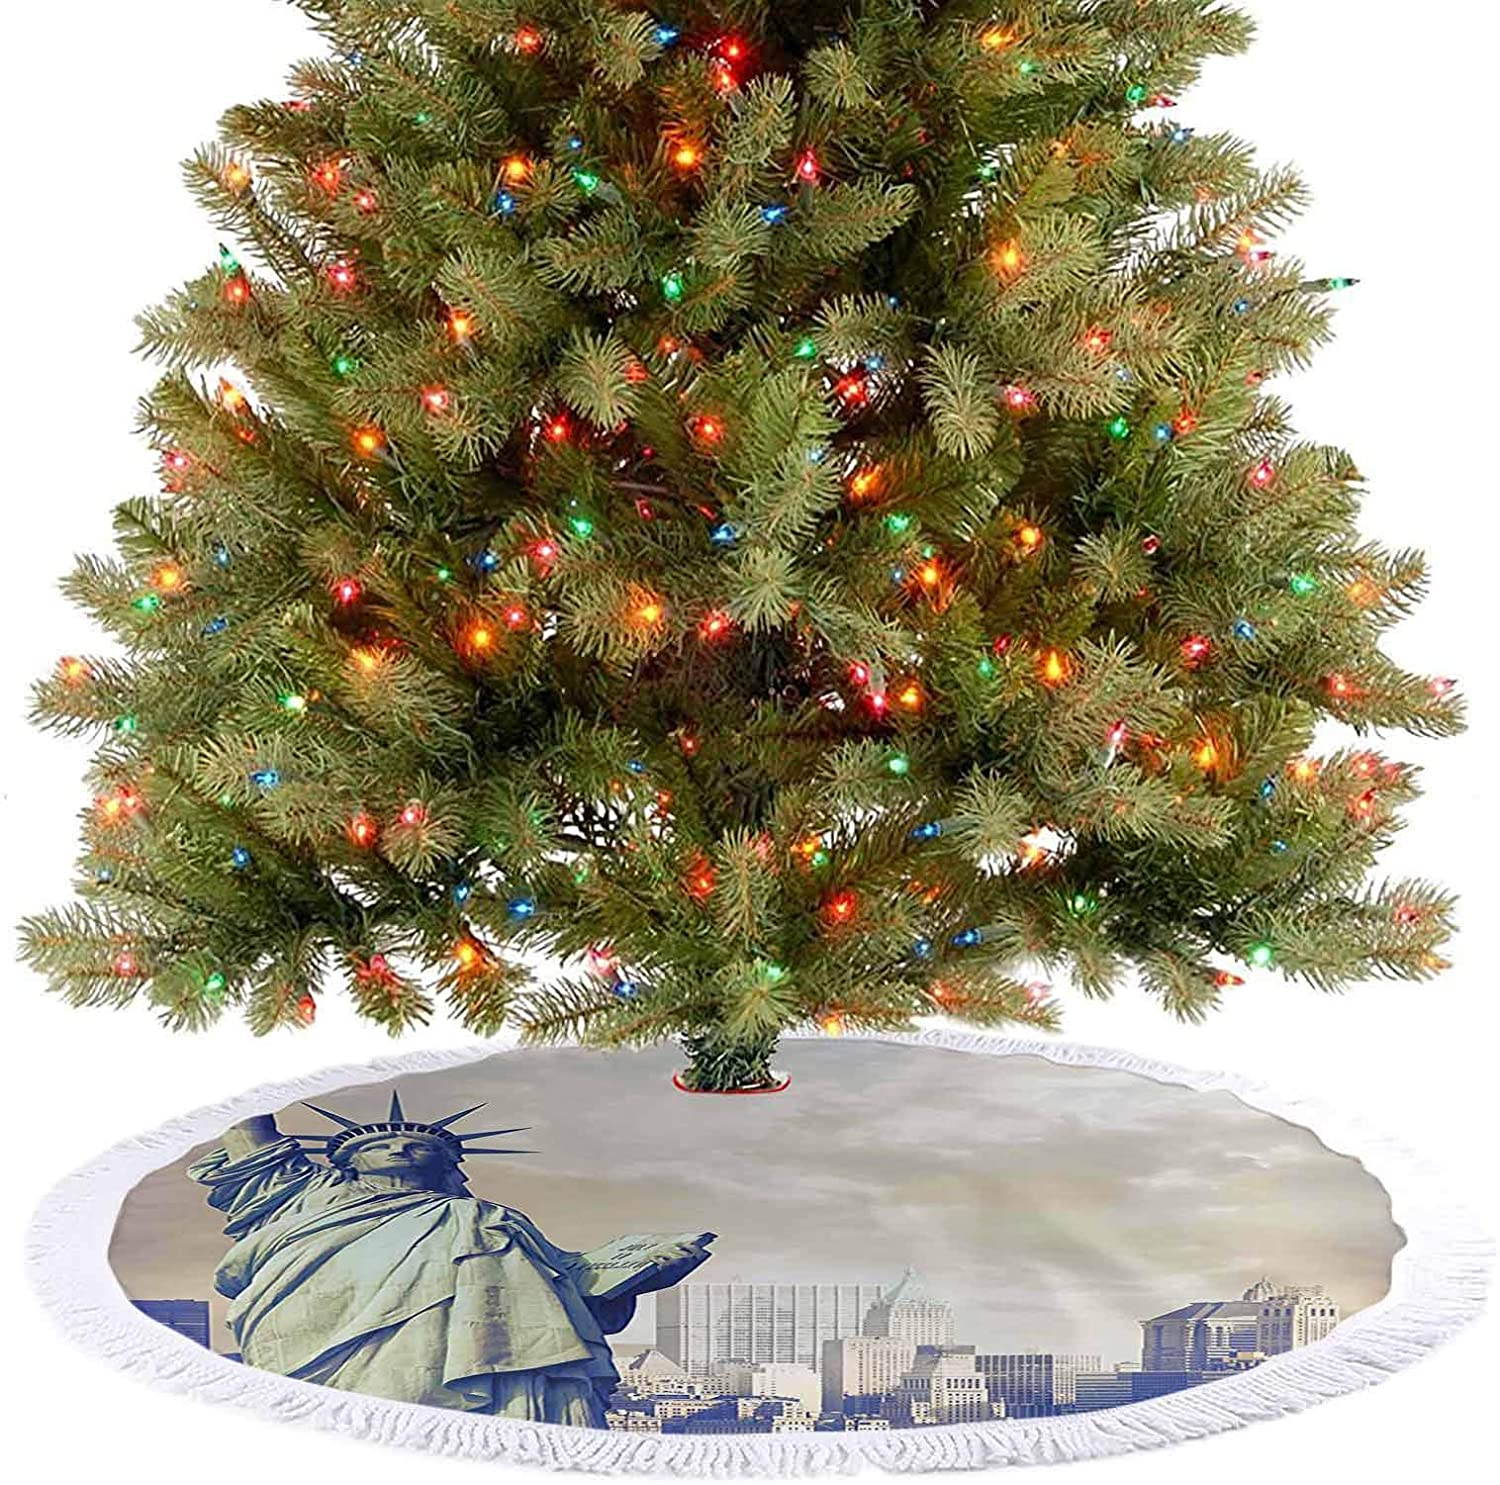 Adorise Xmas Tree Skirts Urban Design Statue of Liberty with New York in The Background Digital Christmas Party Decorations for Holiday Decorations - 48 Inch